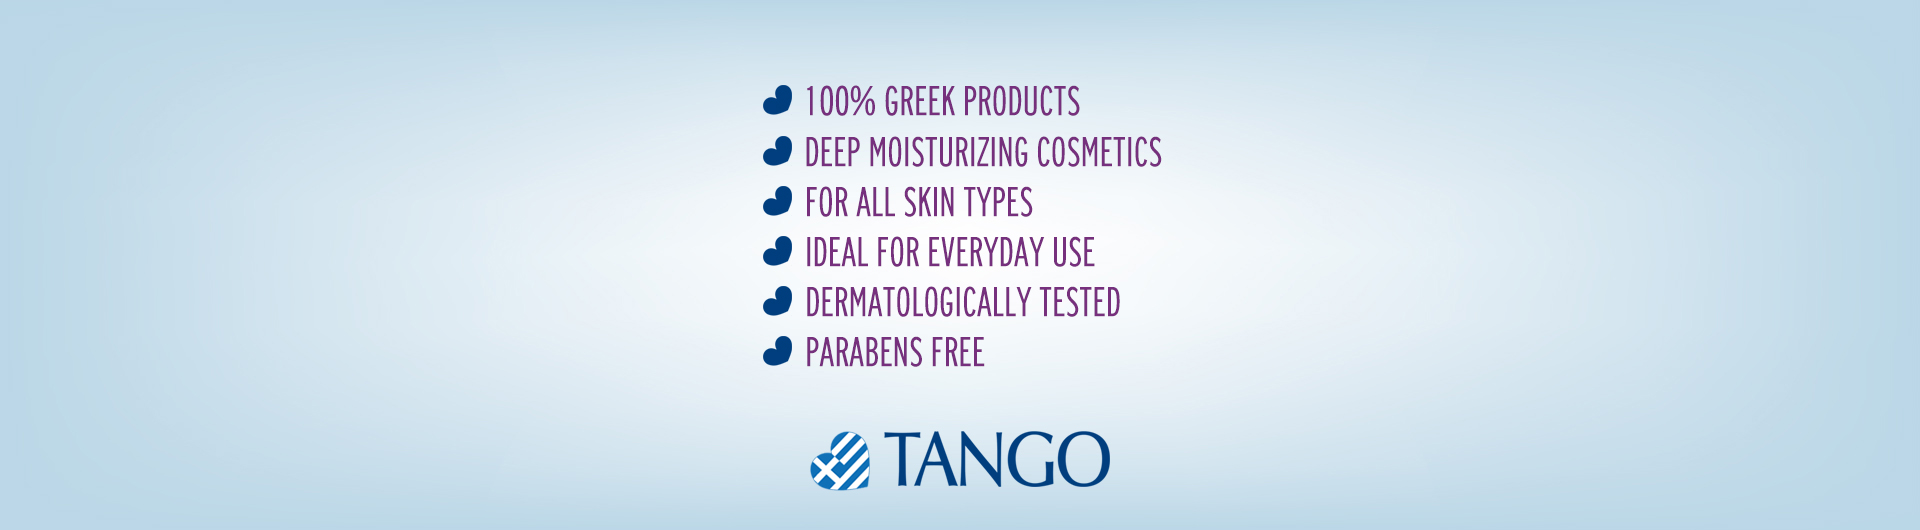 Tango greek products